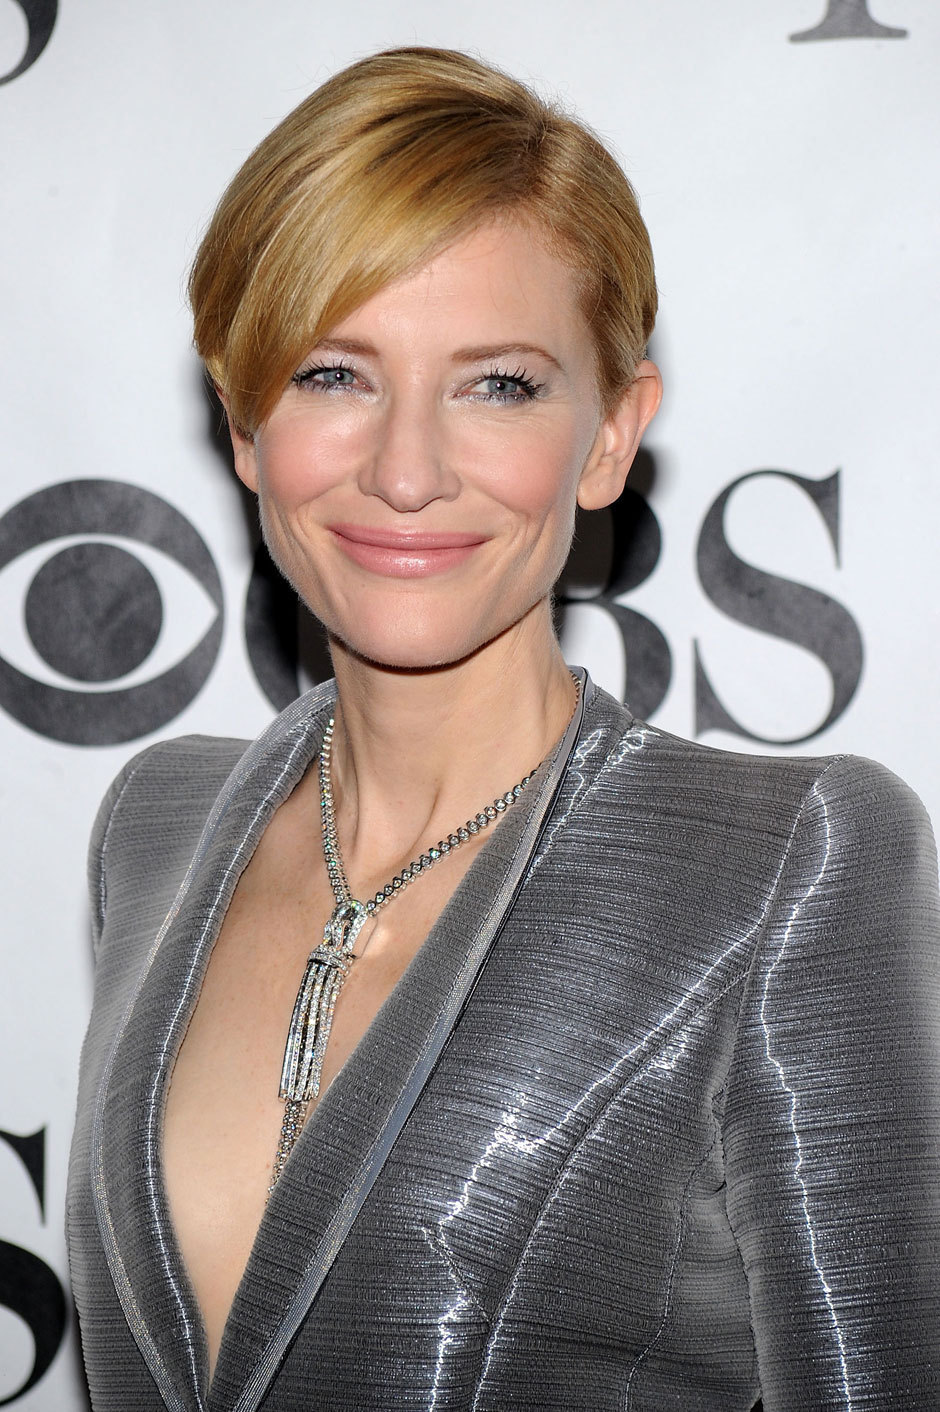 Cate Blanchett Hair Love It Or Leave It Photos Poll